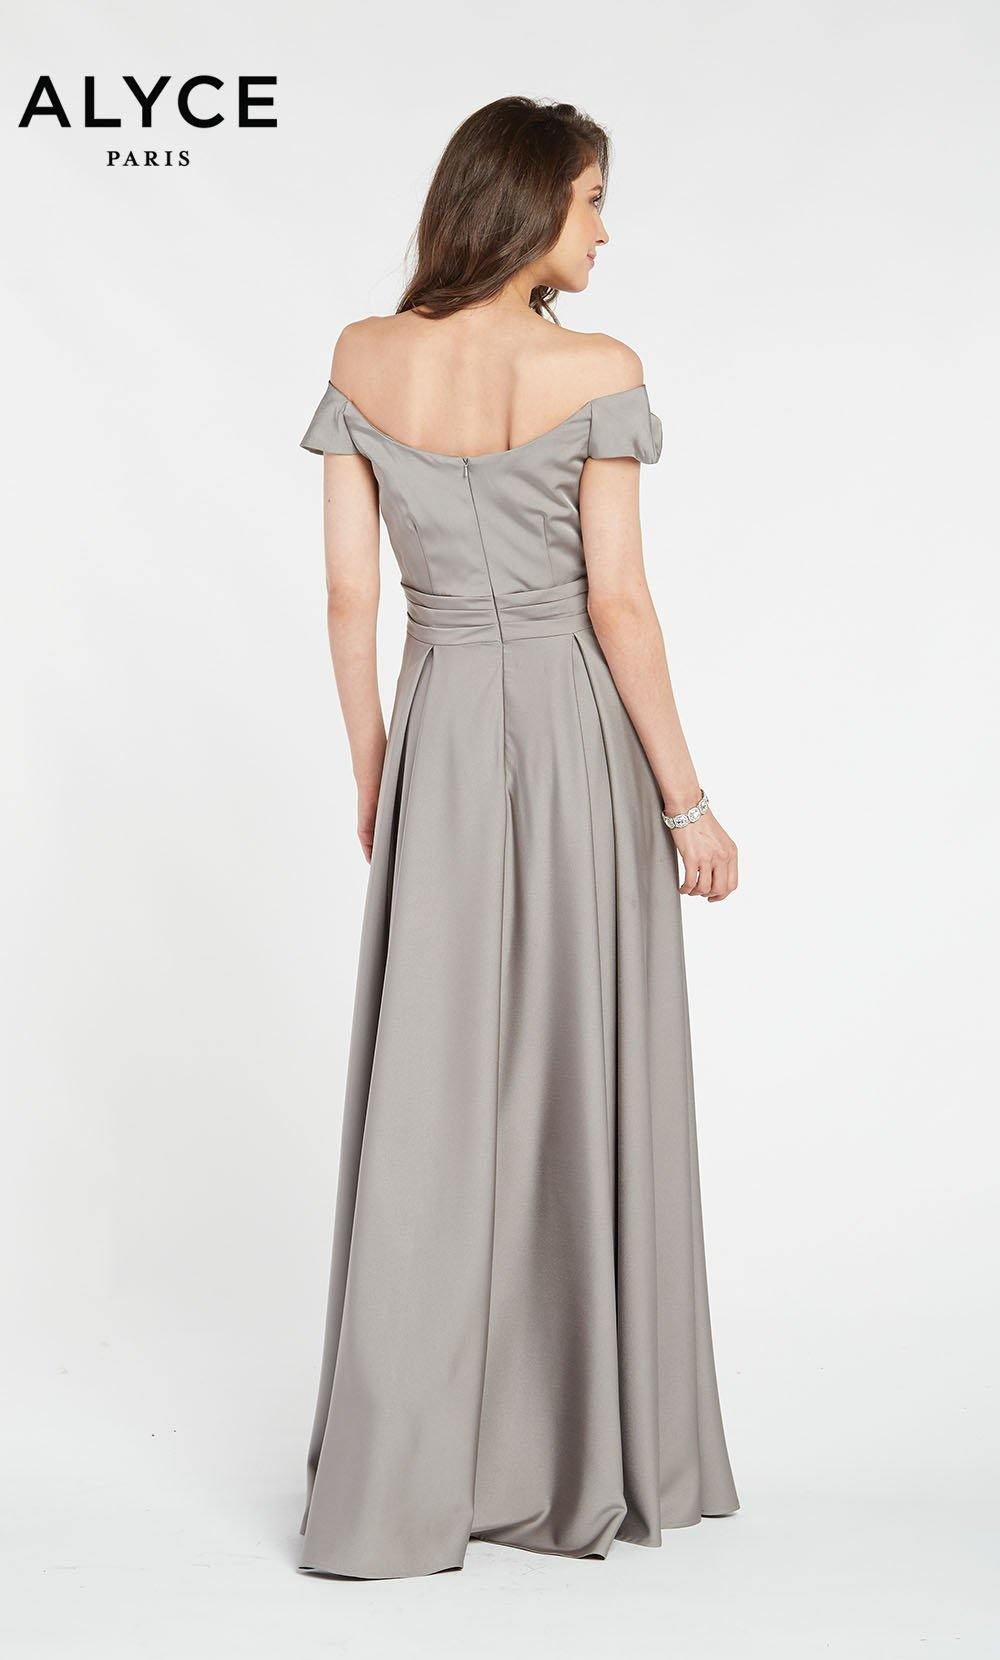 Alyce 27123 long gown with an off the shoulder zip up back